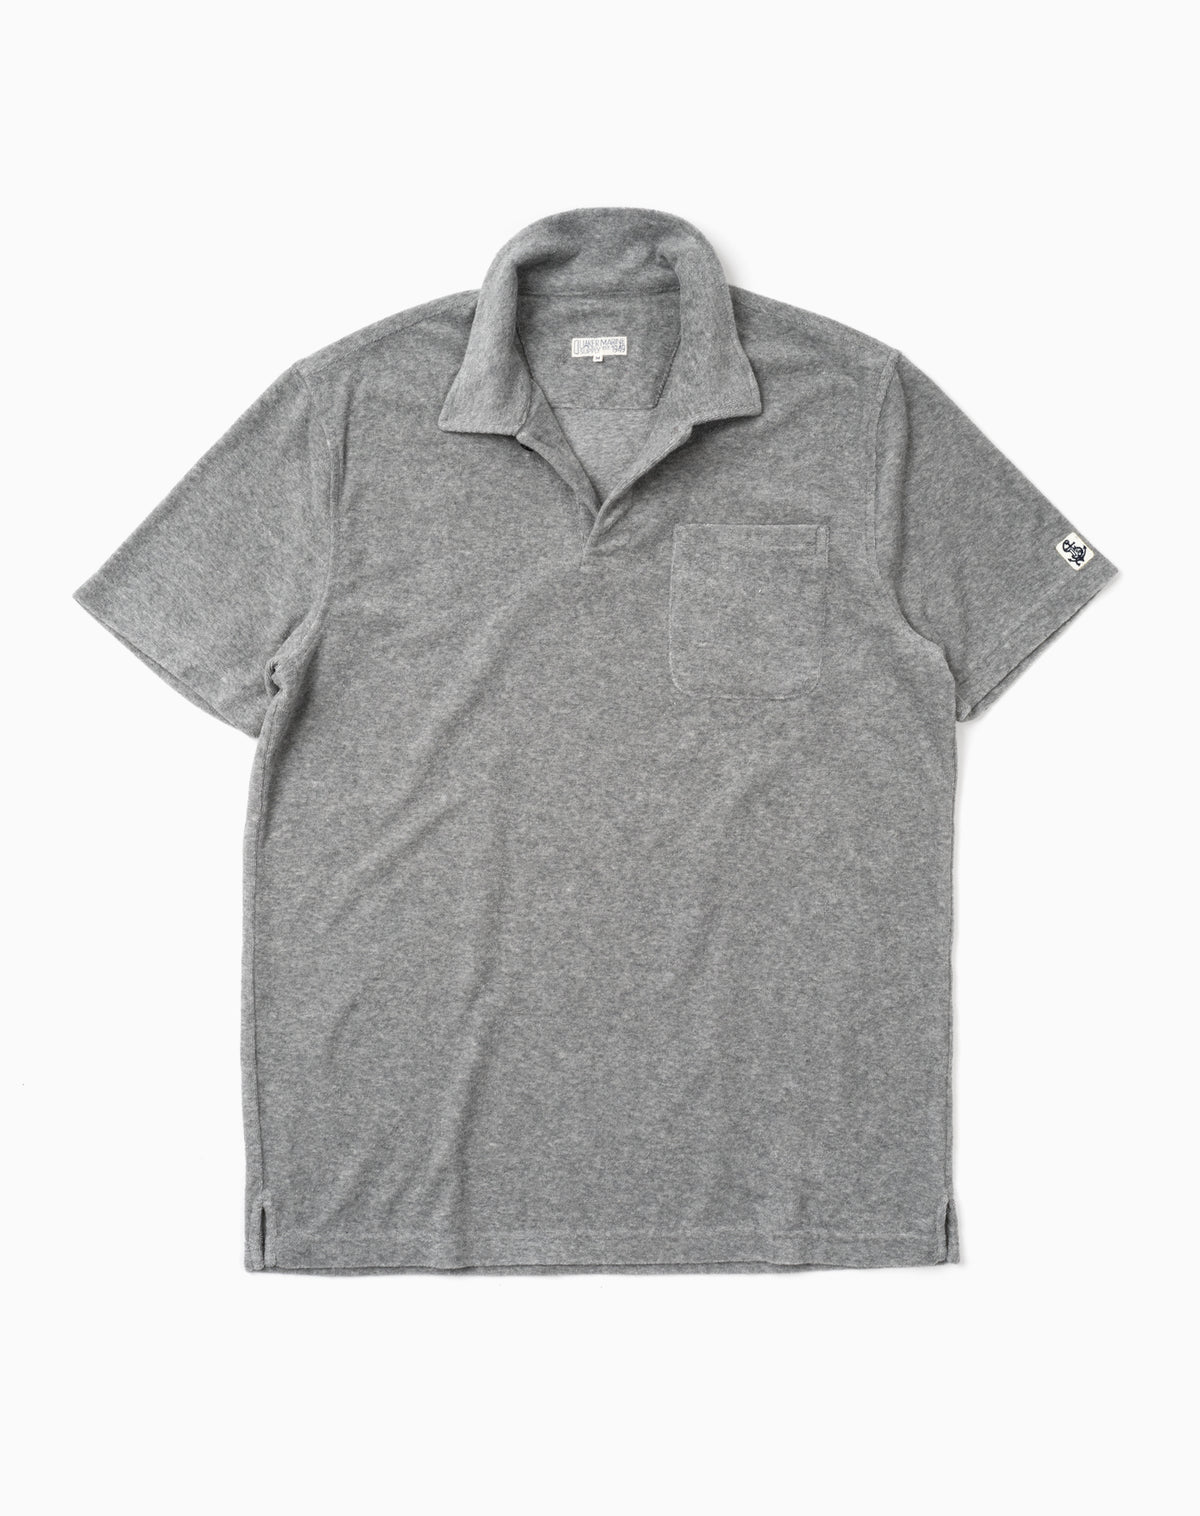 Terry Polo in Grey